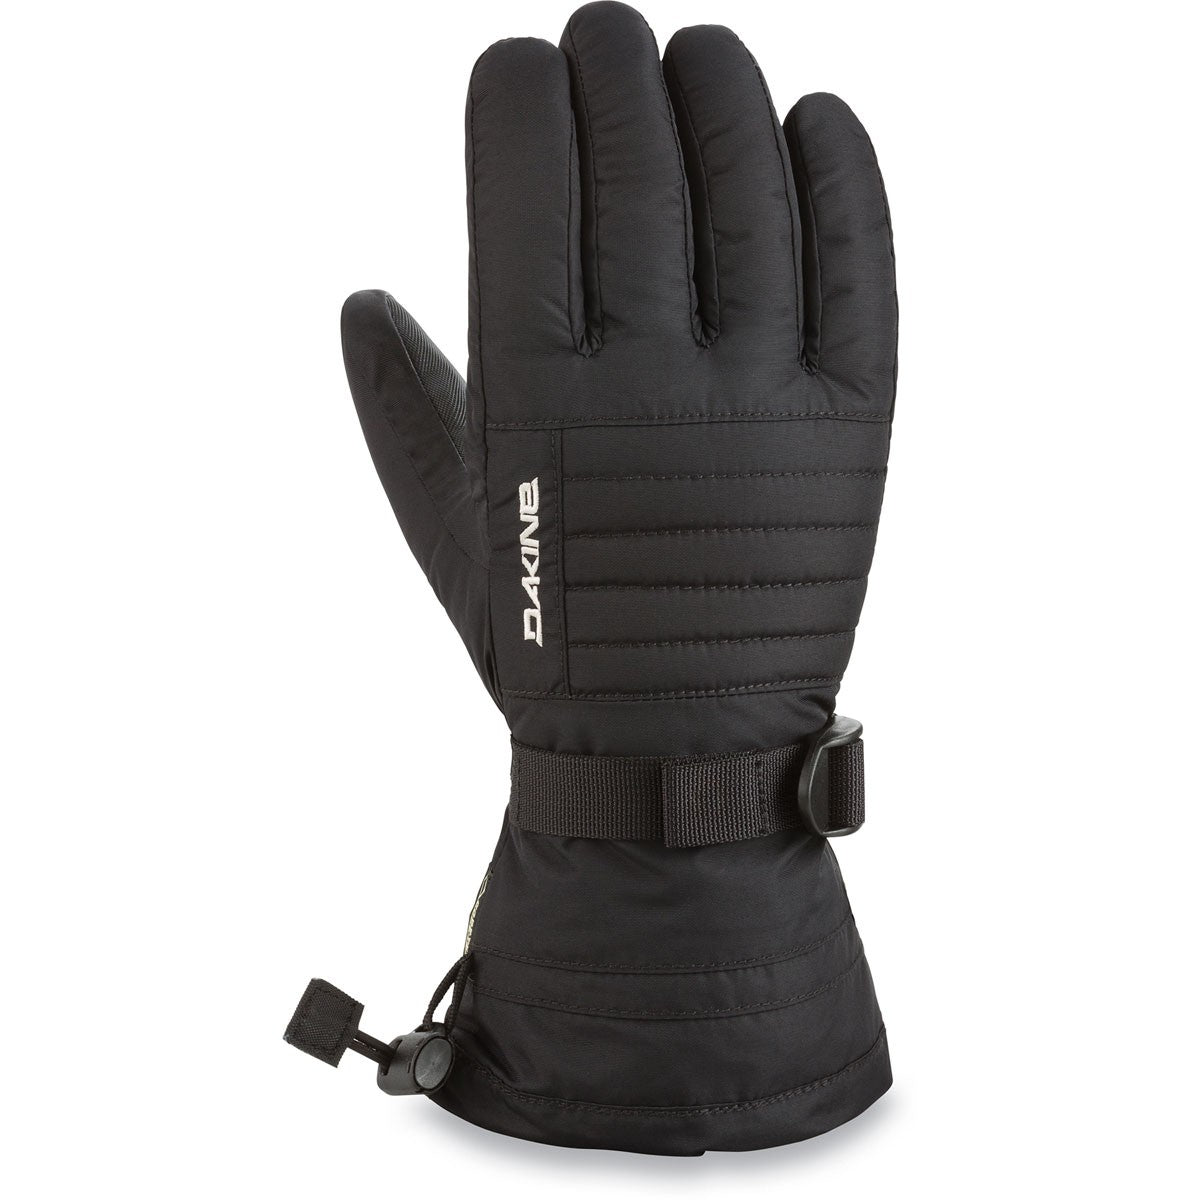 Dakine Omni Snow Glove Womens - Black